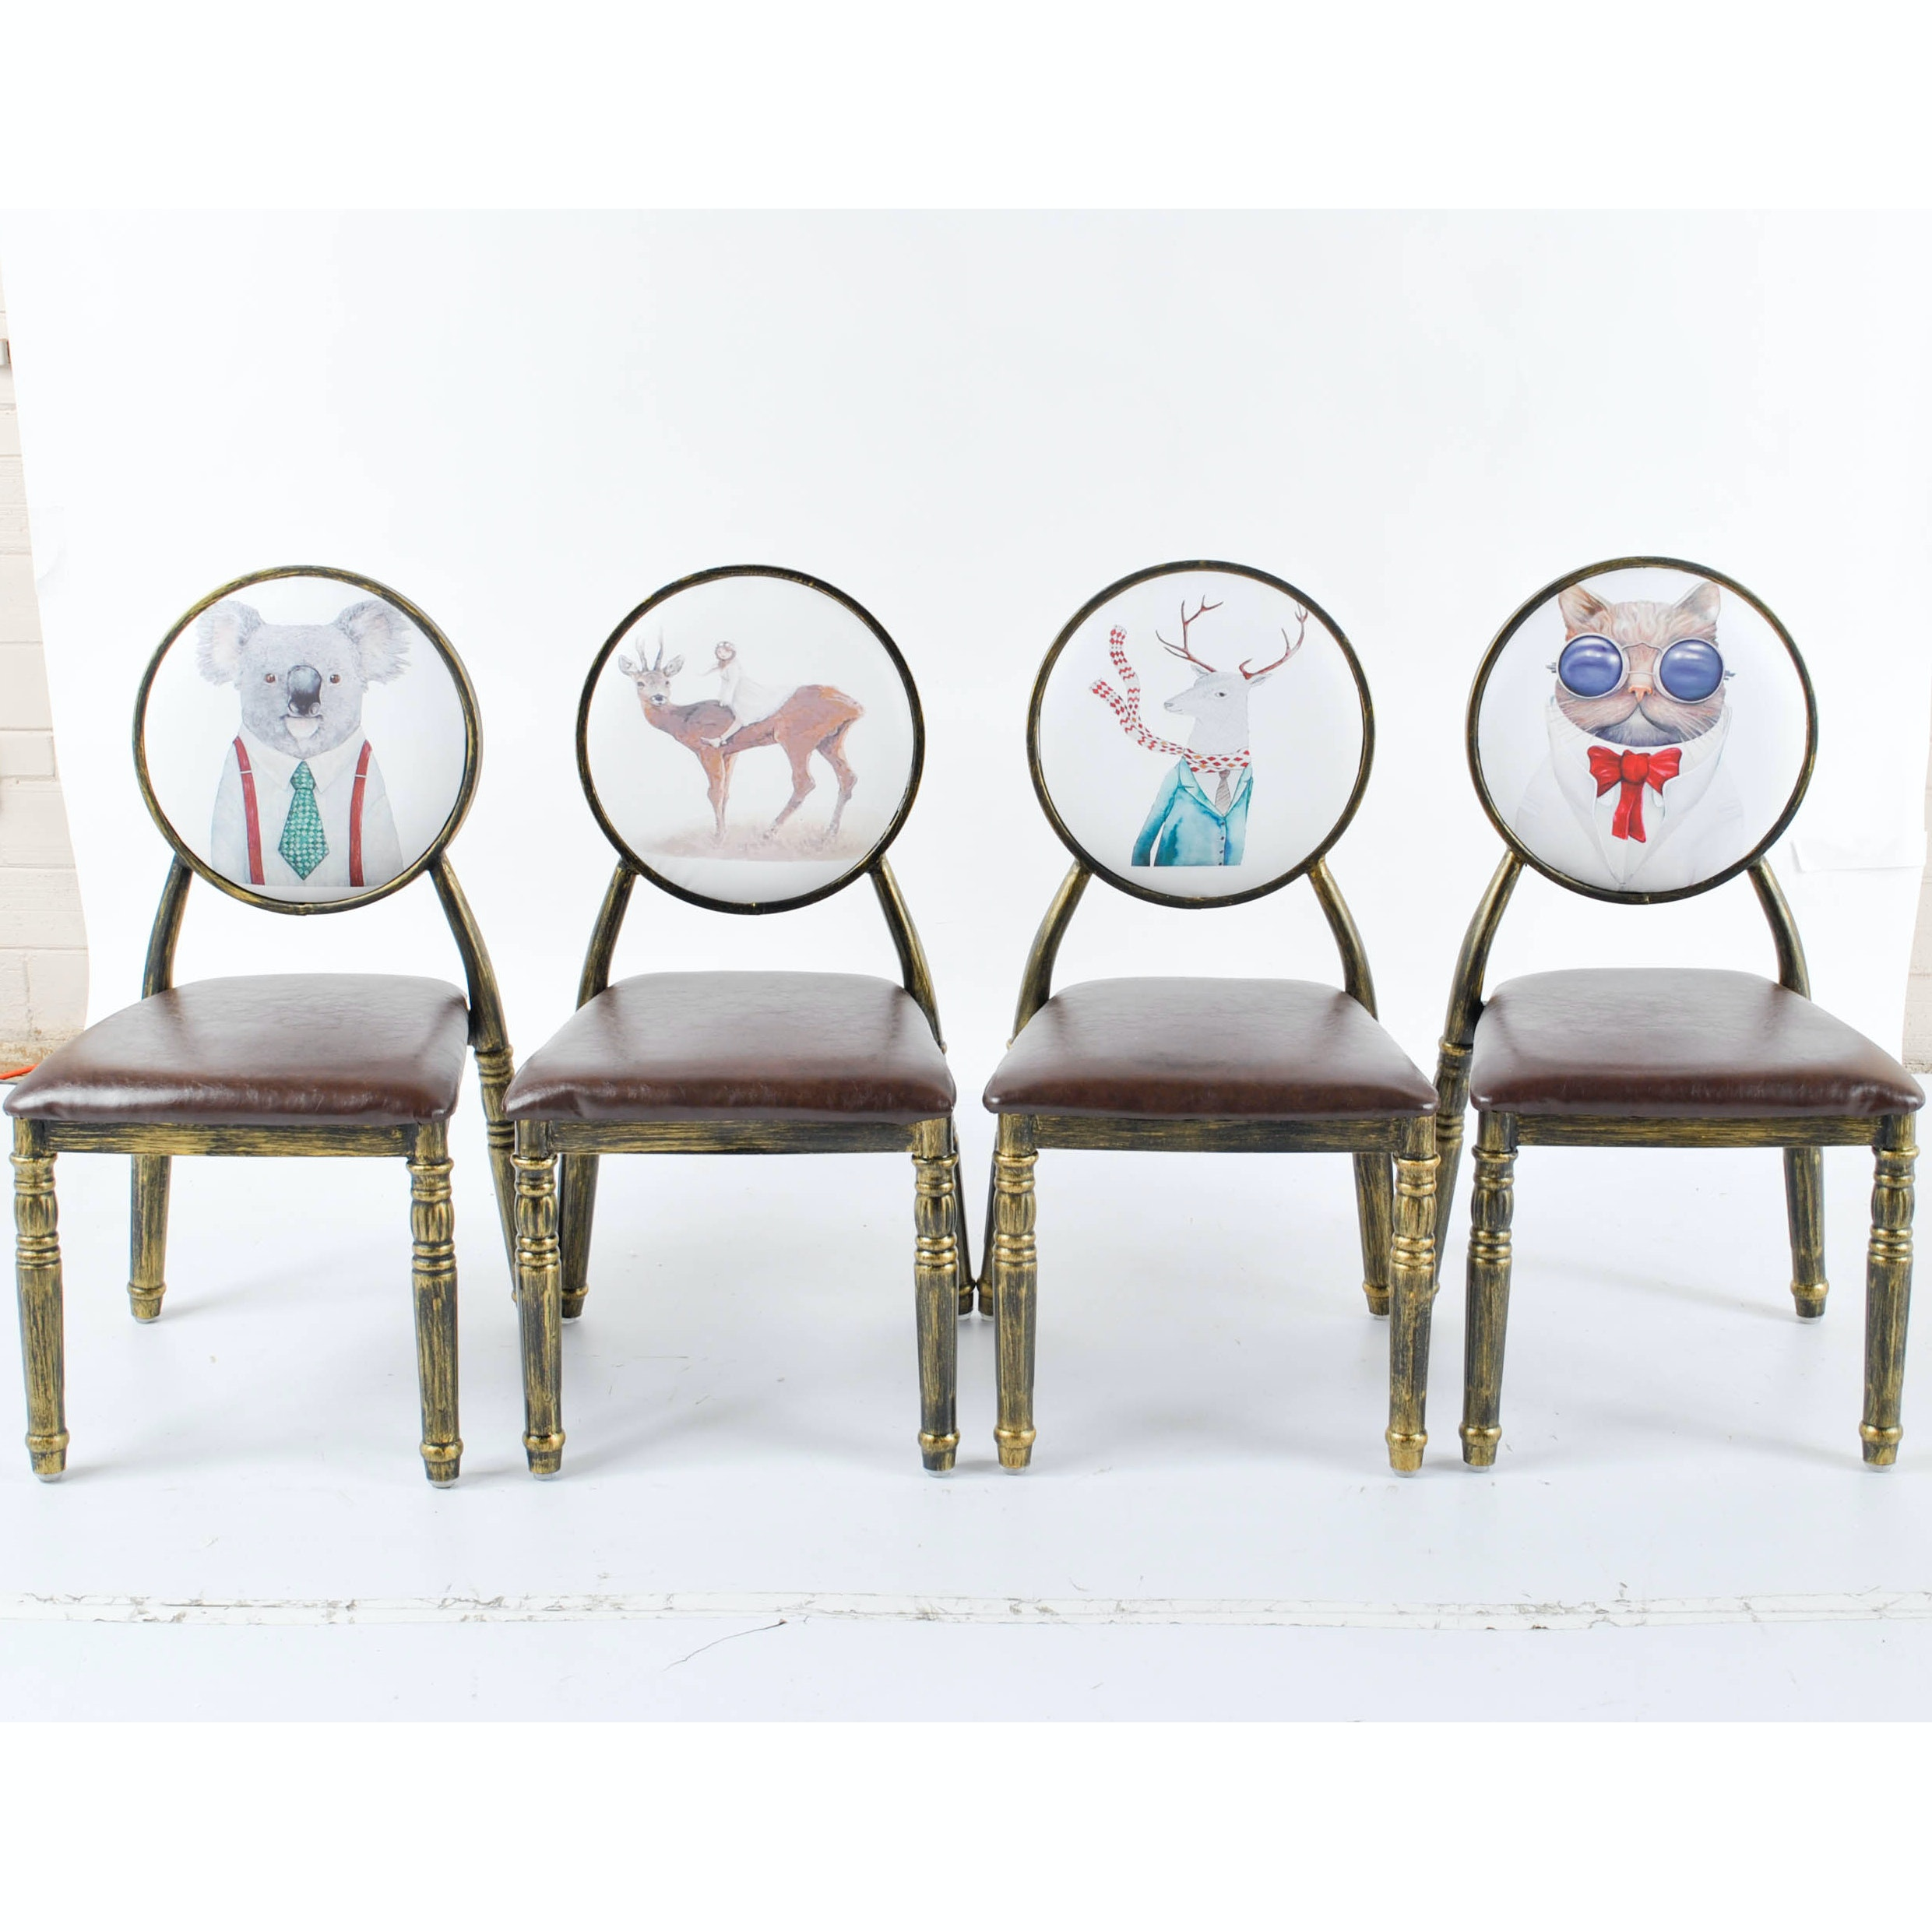 Contemporary Vinyl Upholstered Side Chairs with Novelty Animal Prints